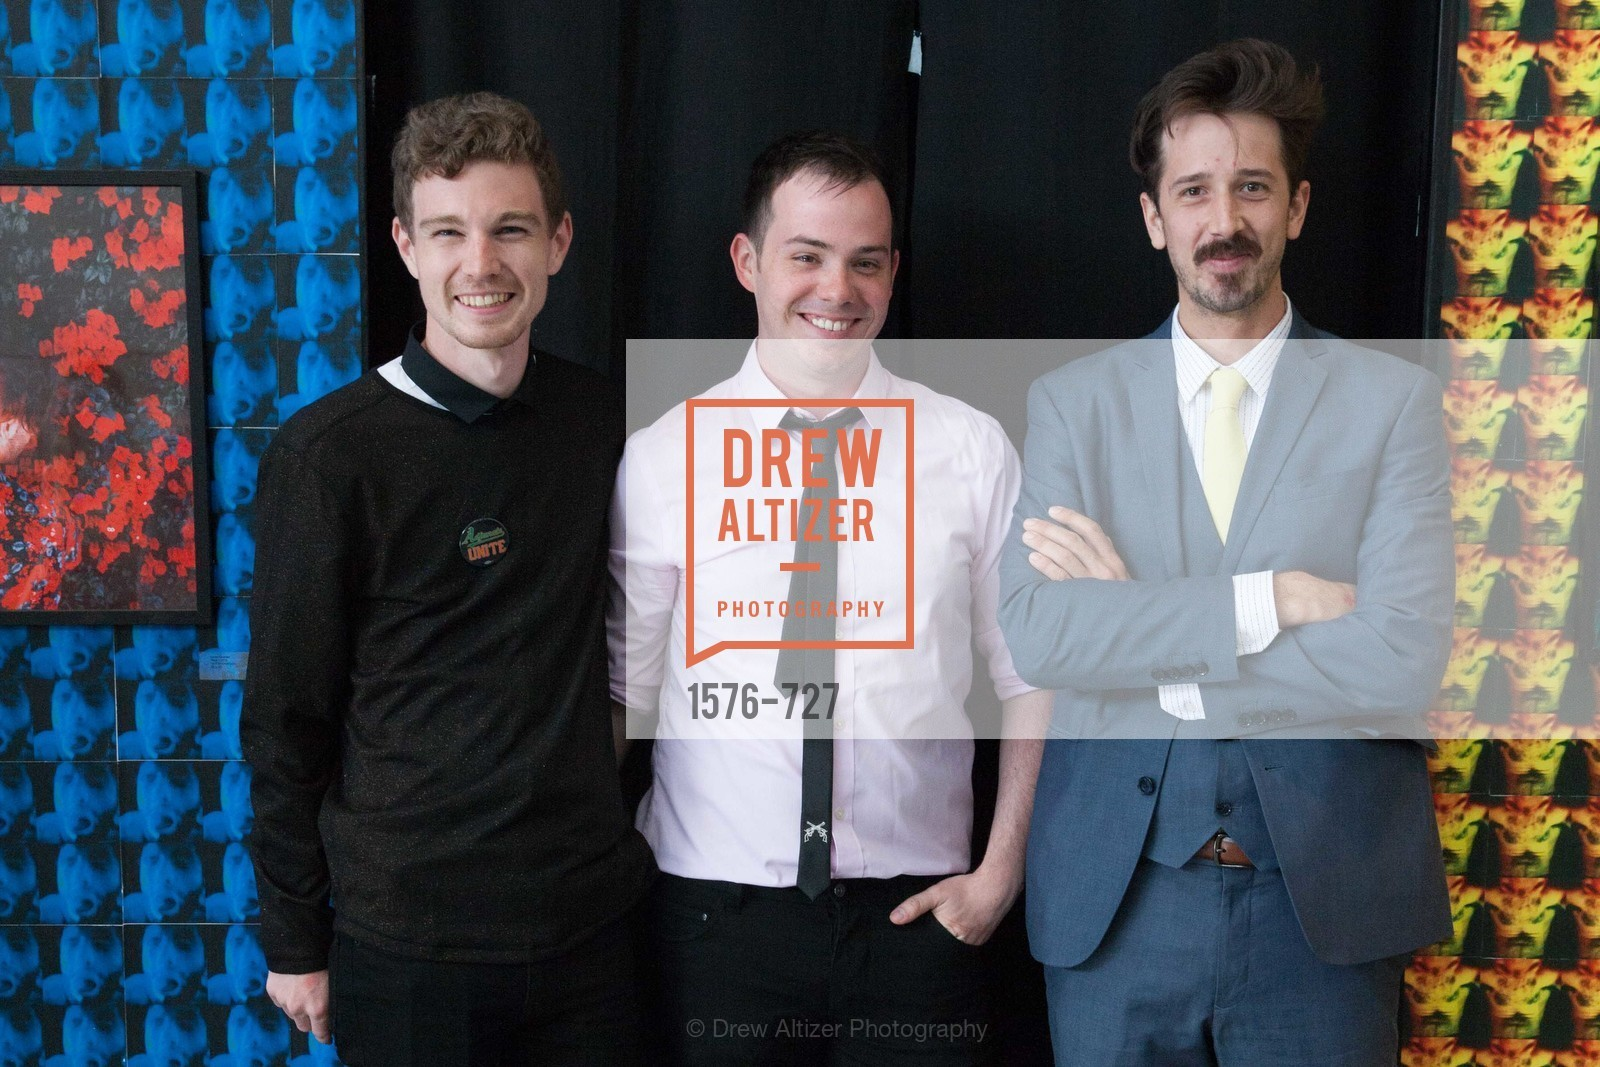 Christopher Squire, Scott Welsh, Owen Laurion, SAN FRANCISCO ART INSTITUTE Gala Honoring Art Visionary and Advocate ROSELYNE CHROMAN SWIG, US, May 14th, 2015,Drew Altizer, Drew Altizer Photography, full-service agency, private events, San Francisco photographer, photographer california